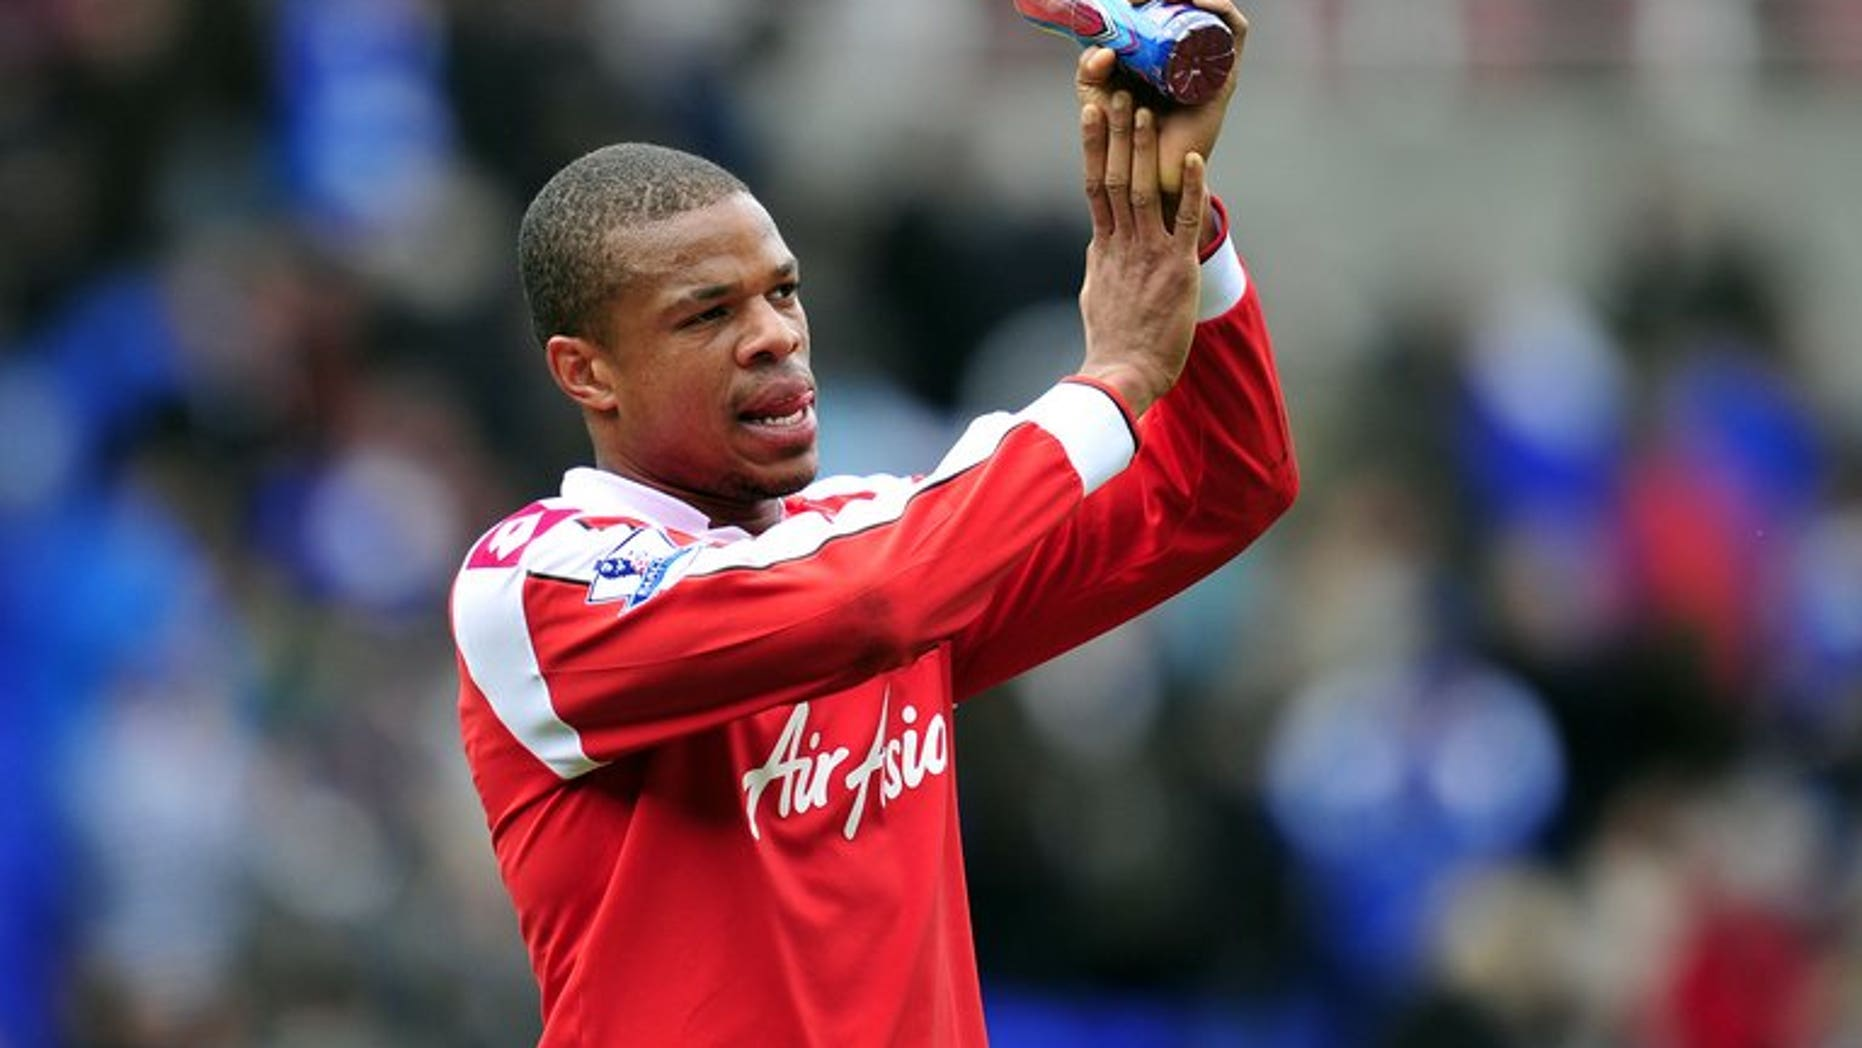 Newcastle's new French recruit Loic Remy pictured after playing for QPR against Reading at the Madejski Stadium on April 28. Former Newcastle United great Alan Shearer has criticised the club's policy of signing French players and says it could create an unhealthy atmosphere within the squad.